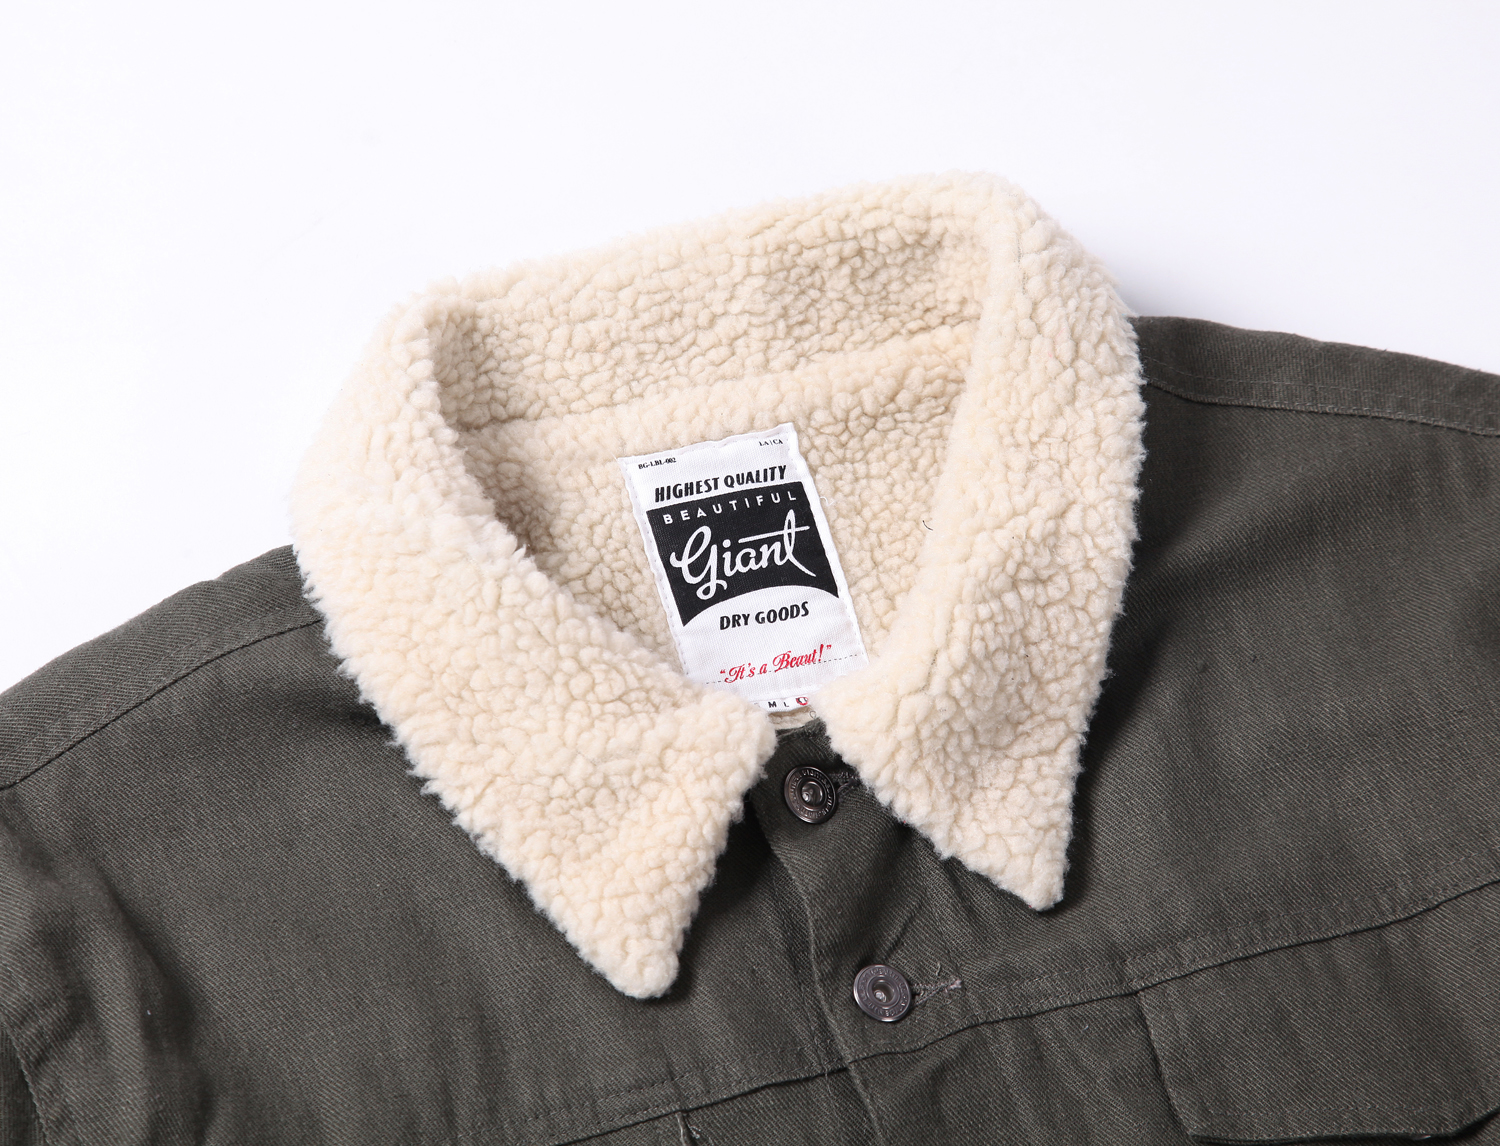 BEAUTIFUL GIANT 2017 Autumn Winter Men Lamb Fur Jacket Pockets Vintage Coat Single-breasted Male Working Jacket